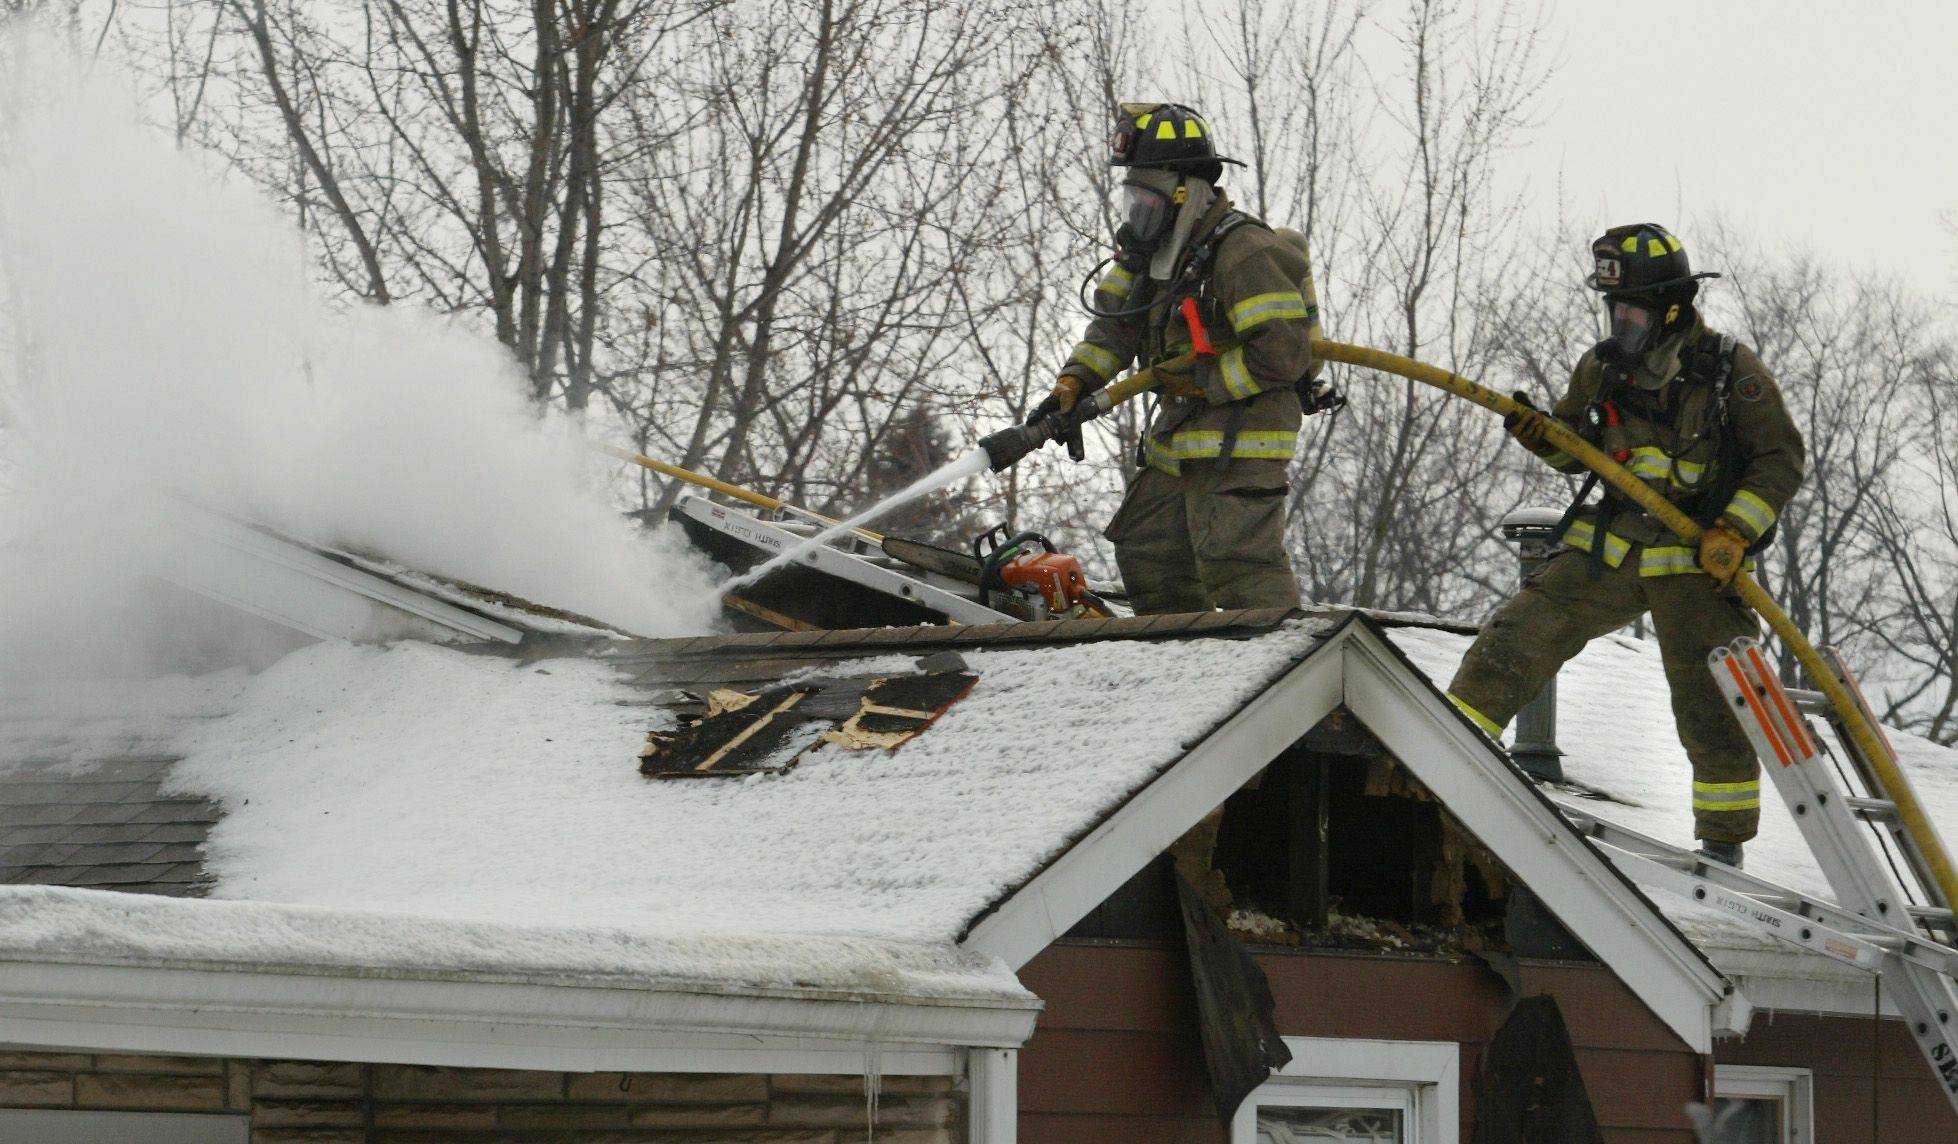 Elgin firefighters Craig Pleva and Curt Hanson help extinguish a fire in the attic of a home Thursday in Elgin Township.